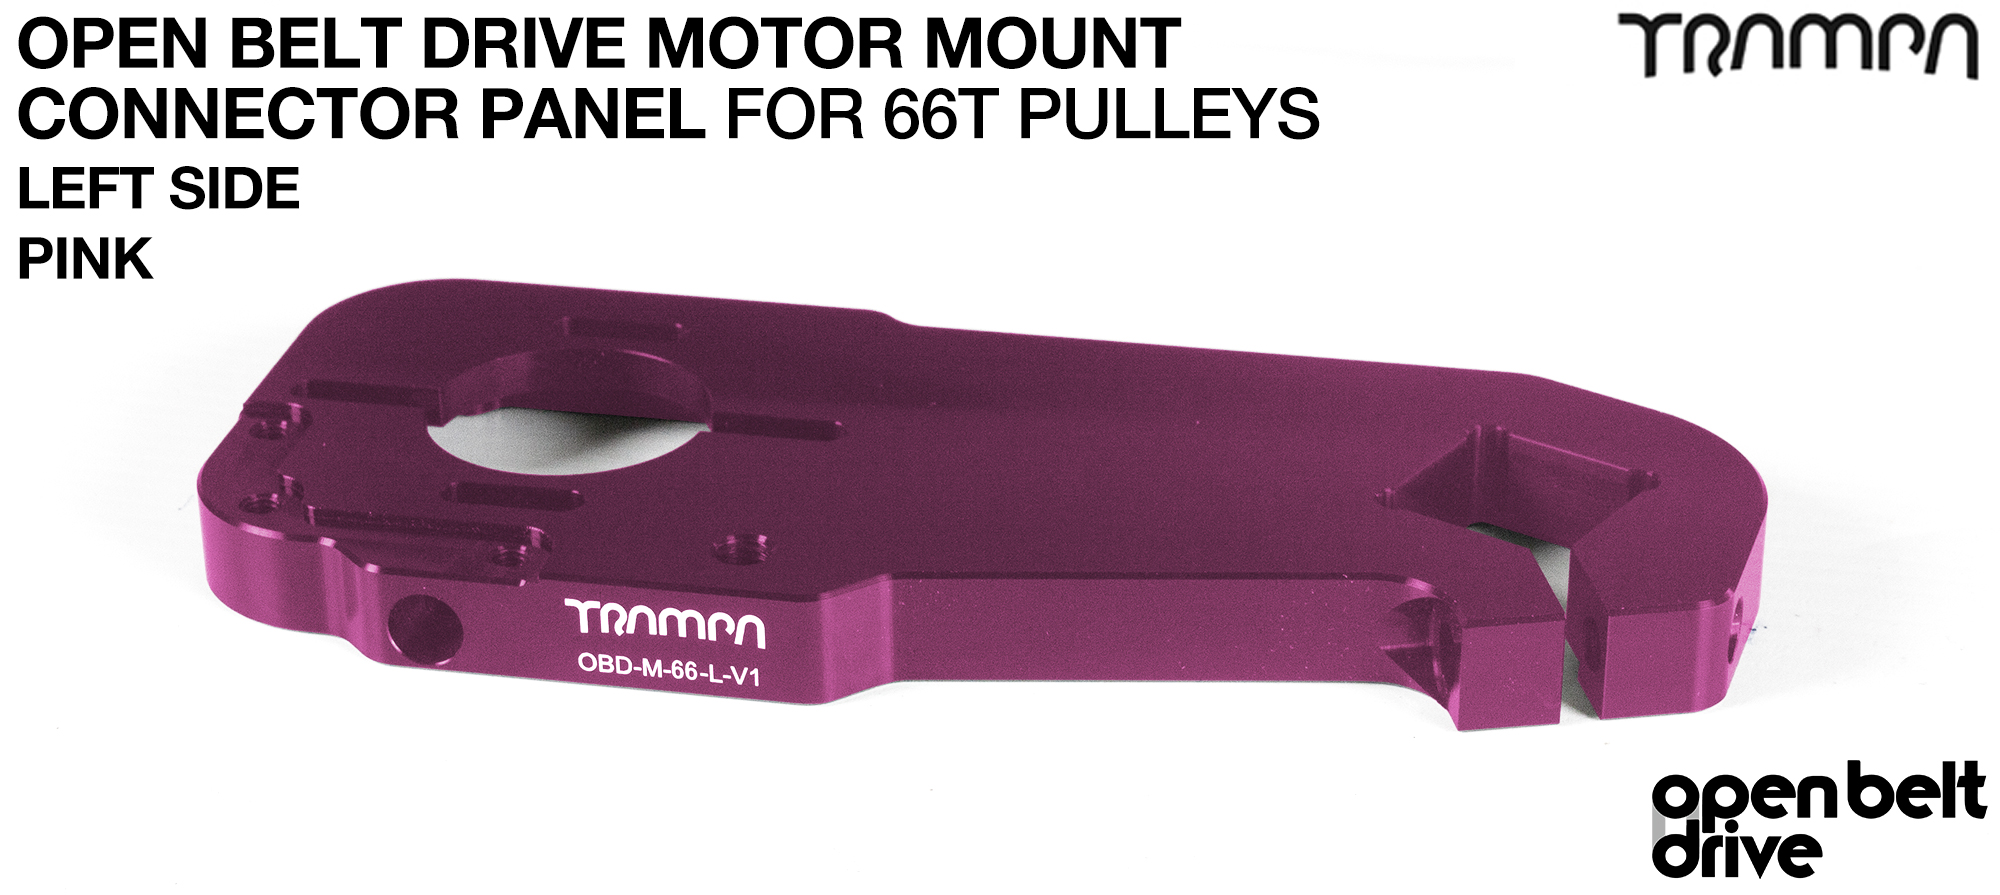 OBD Motor Mount Connector Panel for 66 tooth Pulleys - REGULAR - PINK